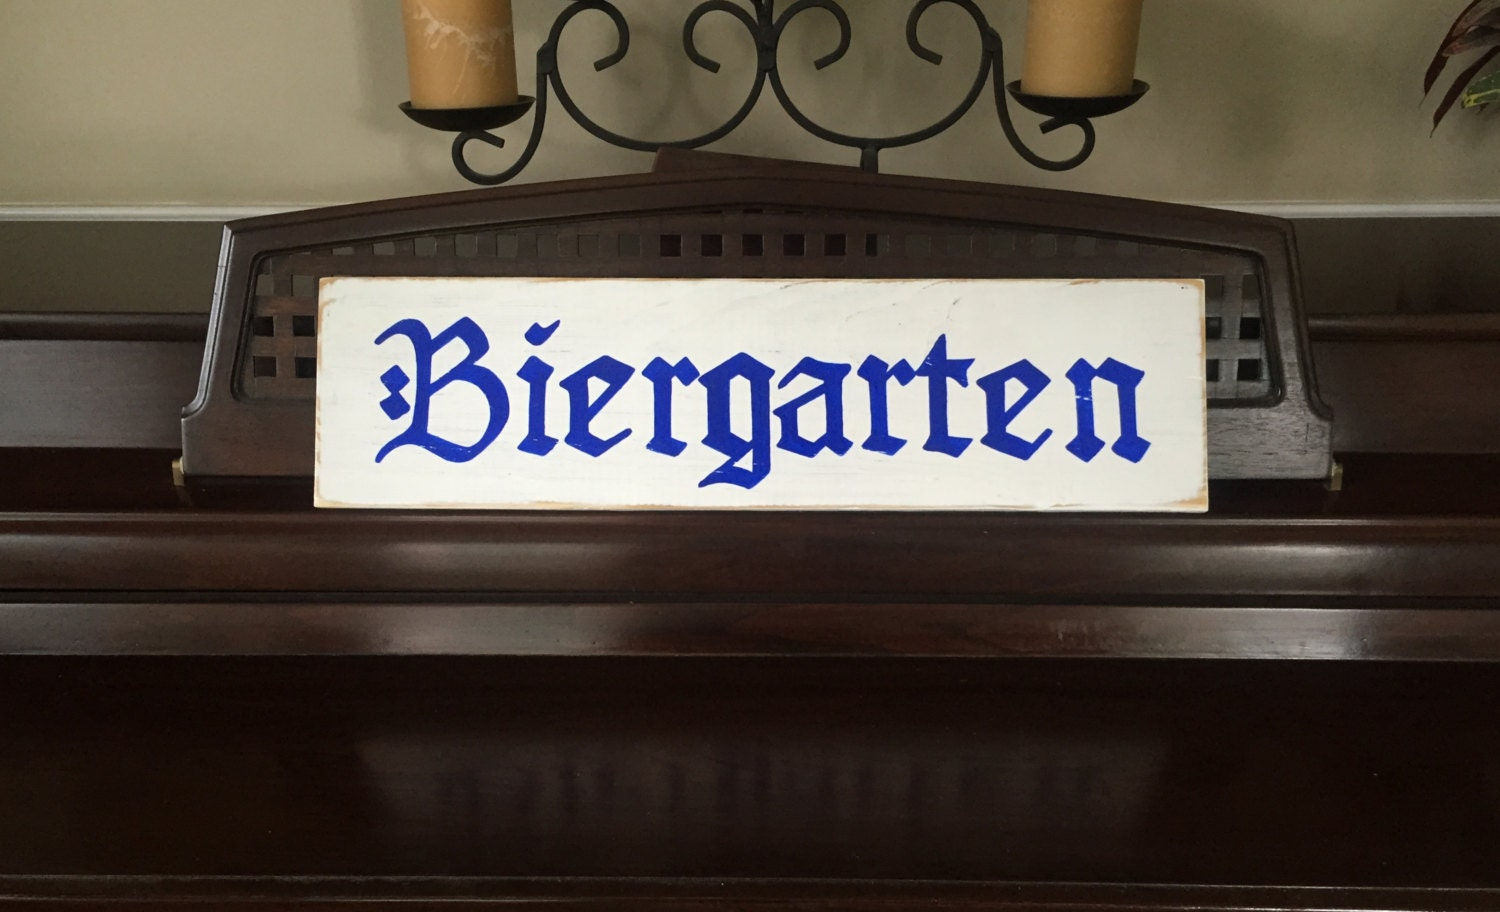 BIERGARTEN Beer Garden Sign Plaque German Deutschlandb Oktoberfest  Octoberfest Party Decor Bavarian Rustic Oompa Band HP Wood Pick Colors